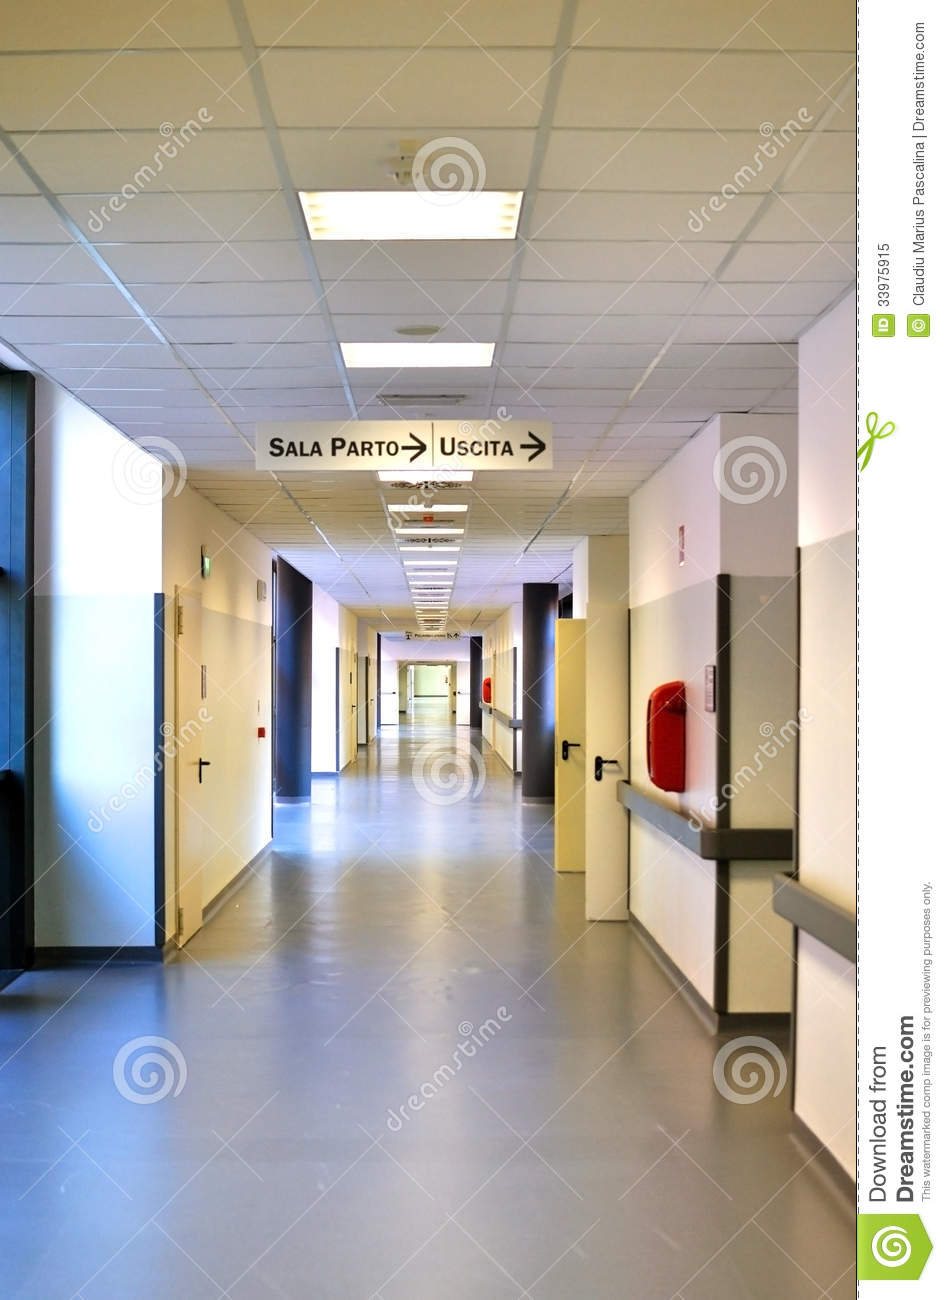 Couloir moderne d 39 h pital en italie photo libre de droits for Interieur hopital